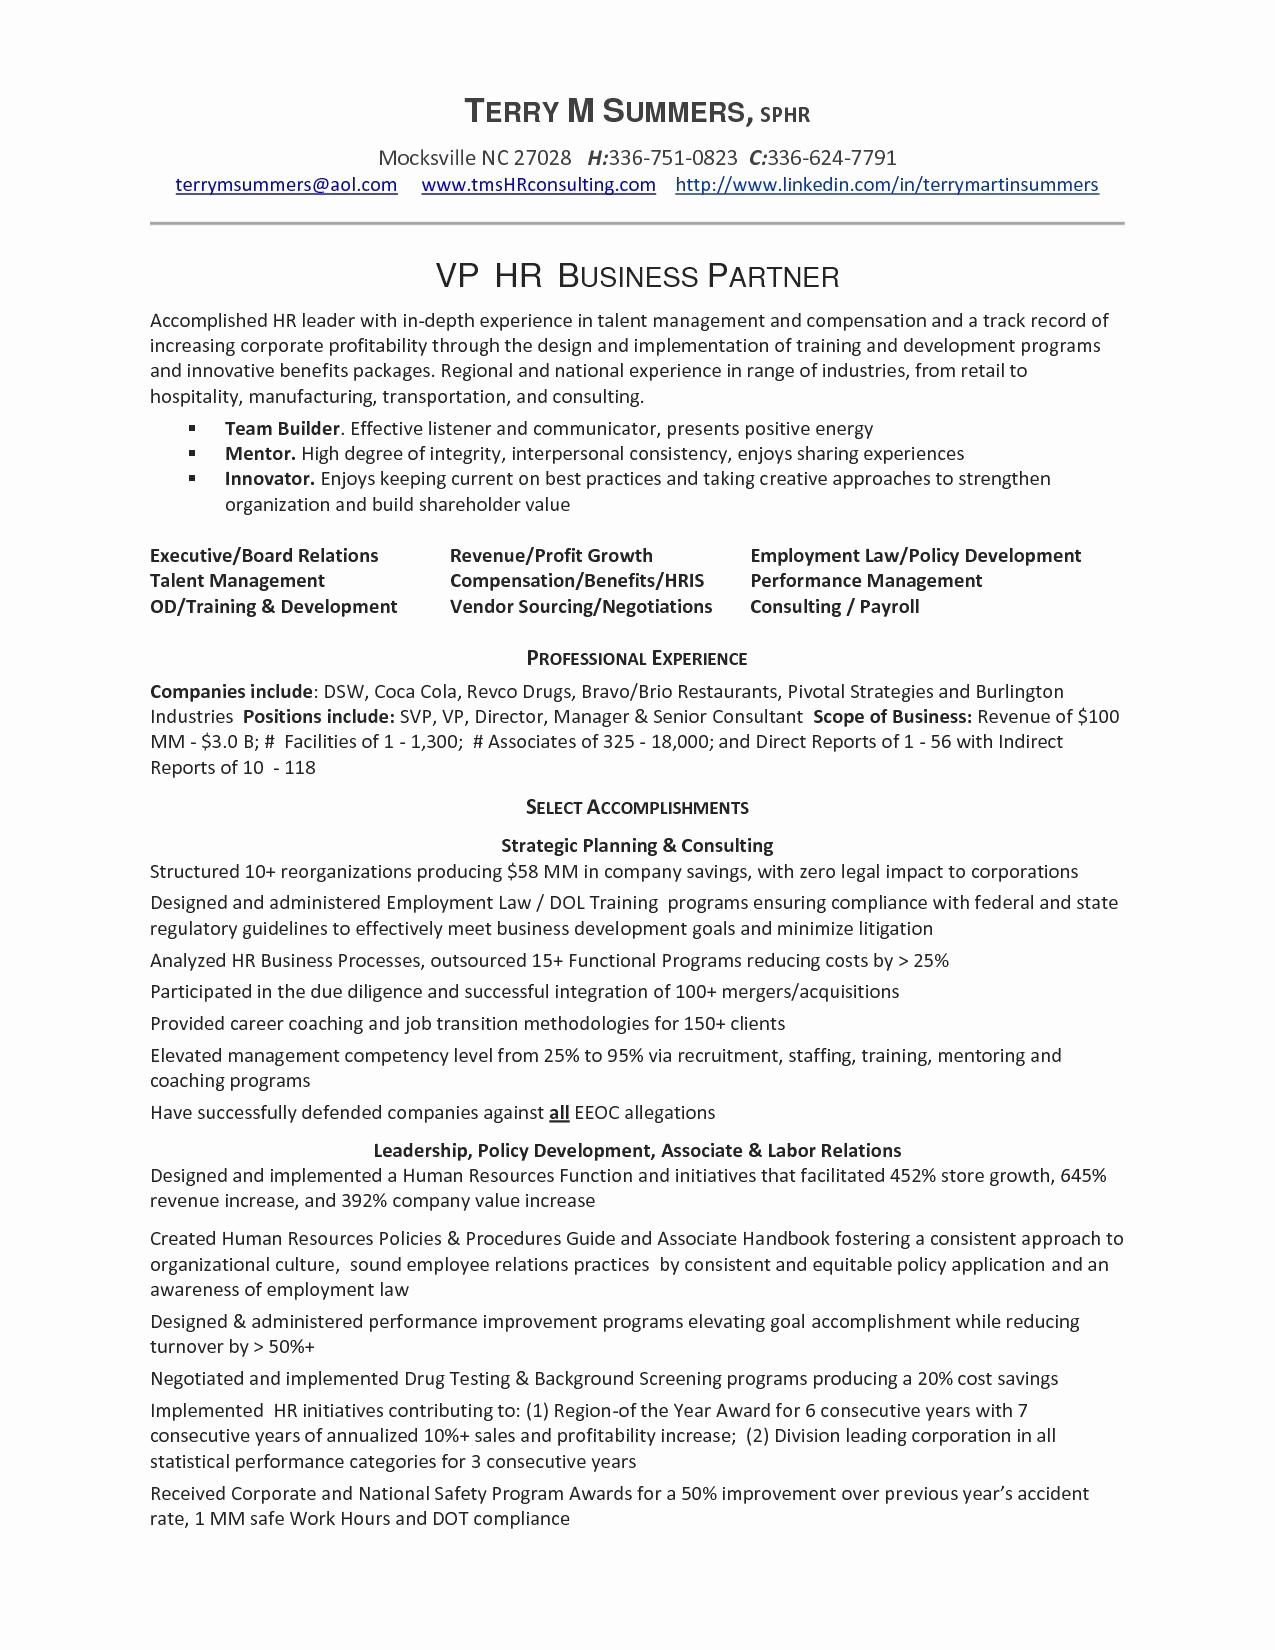 executive director resume template Collection-Resume Template Docx Lovely Executive Director Resume Template Awesome Leadership Resume 5-n